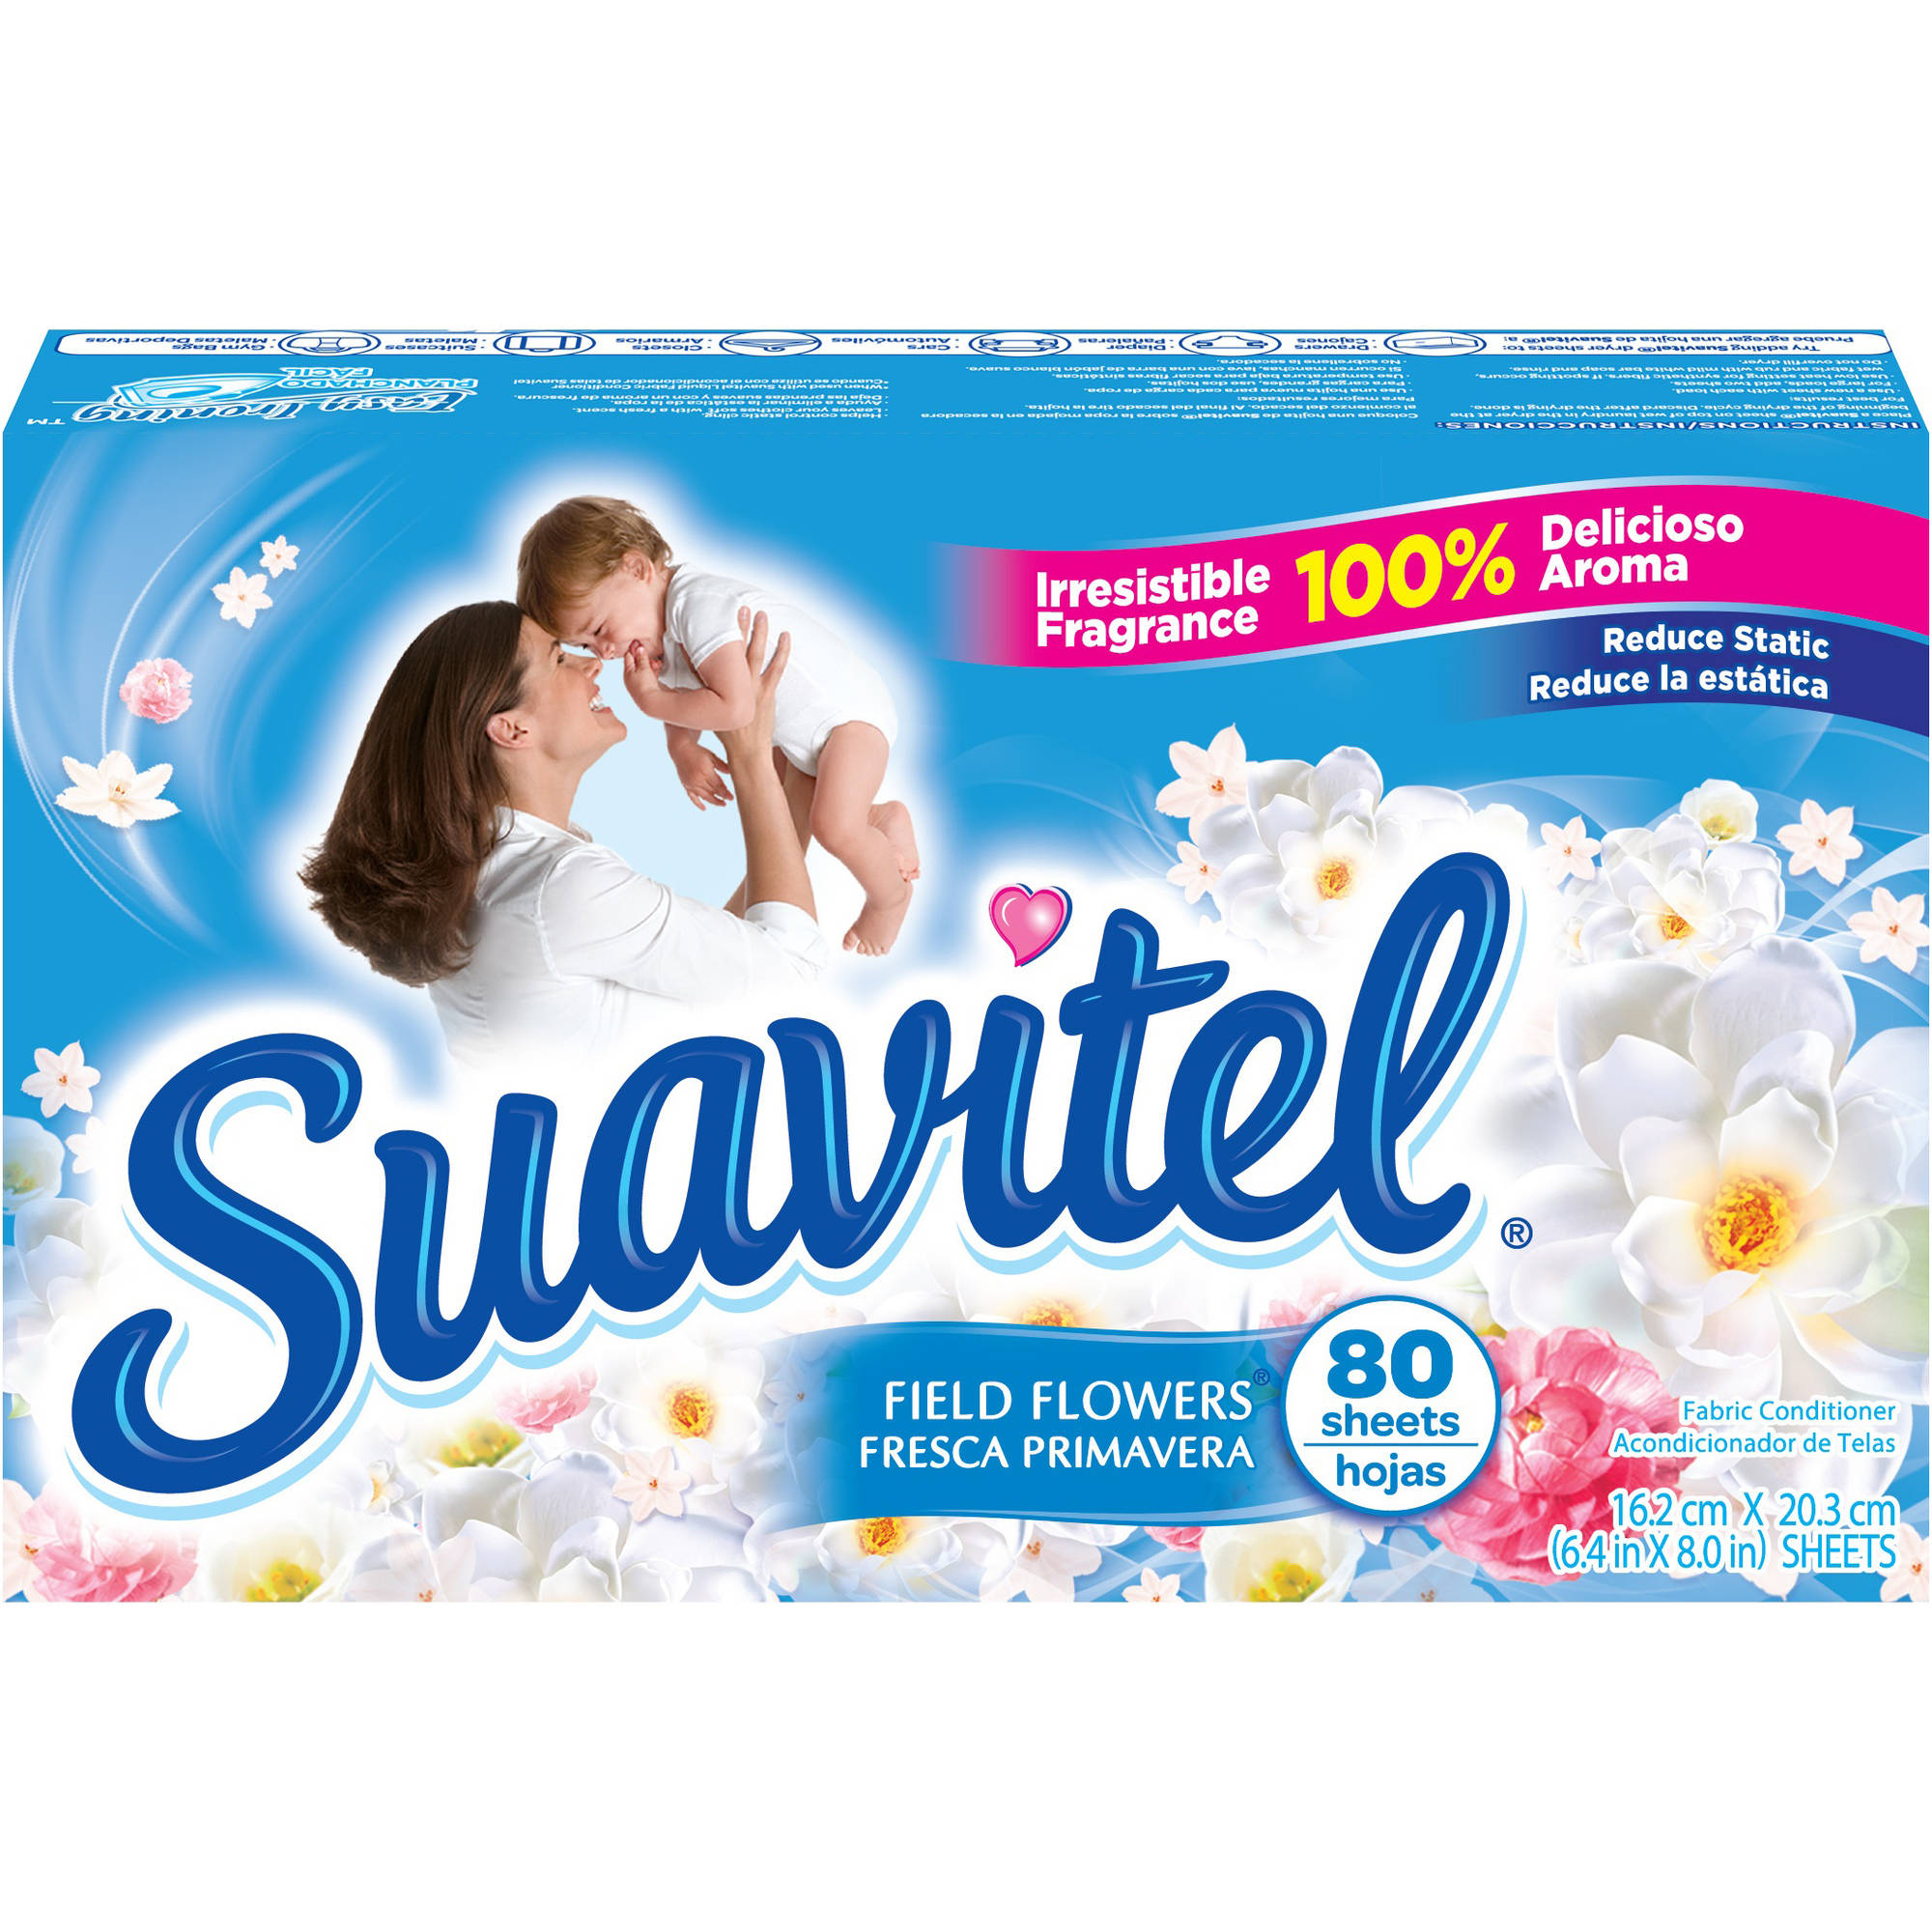 Suavitel Field Flowers Fabric Conditioner Dryer Sheets, 80 sheets